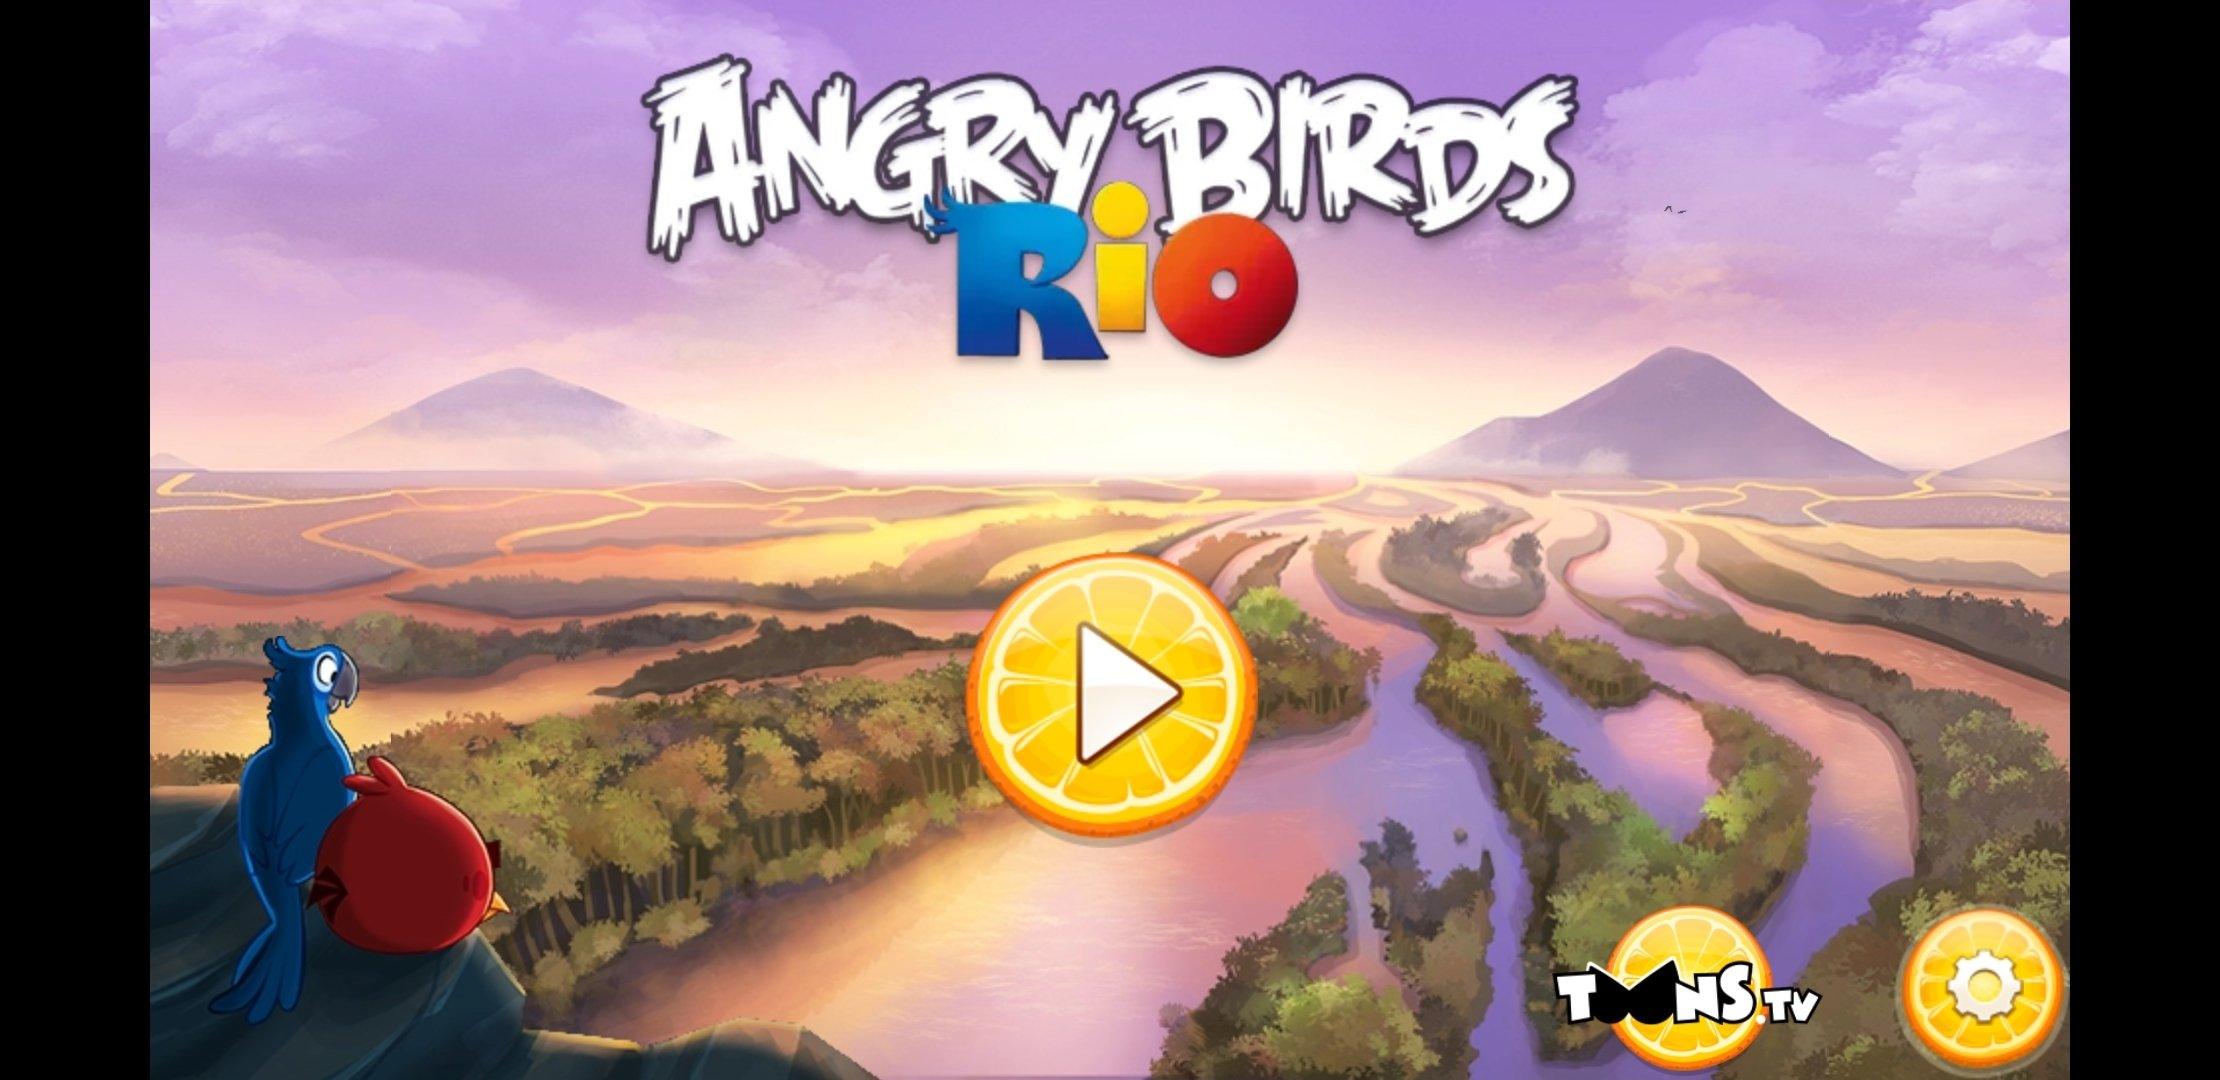 Angry birds rio swf download